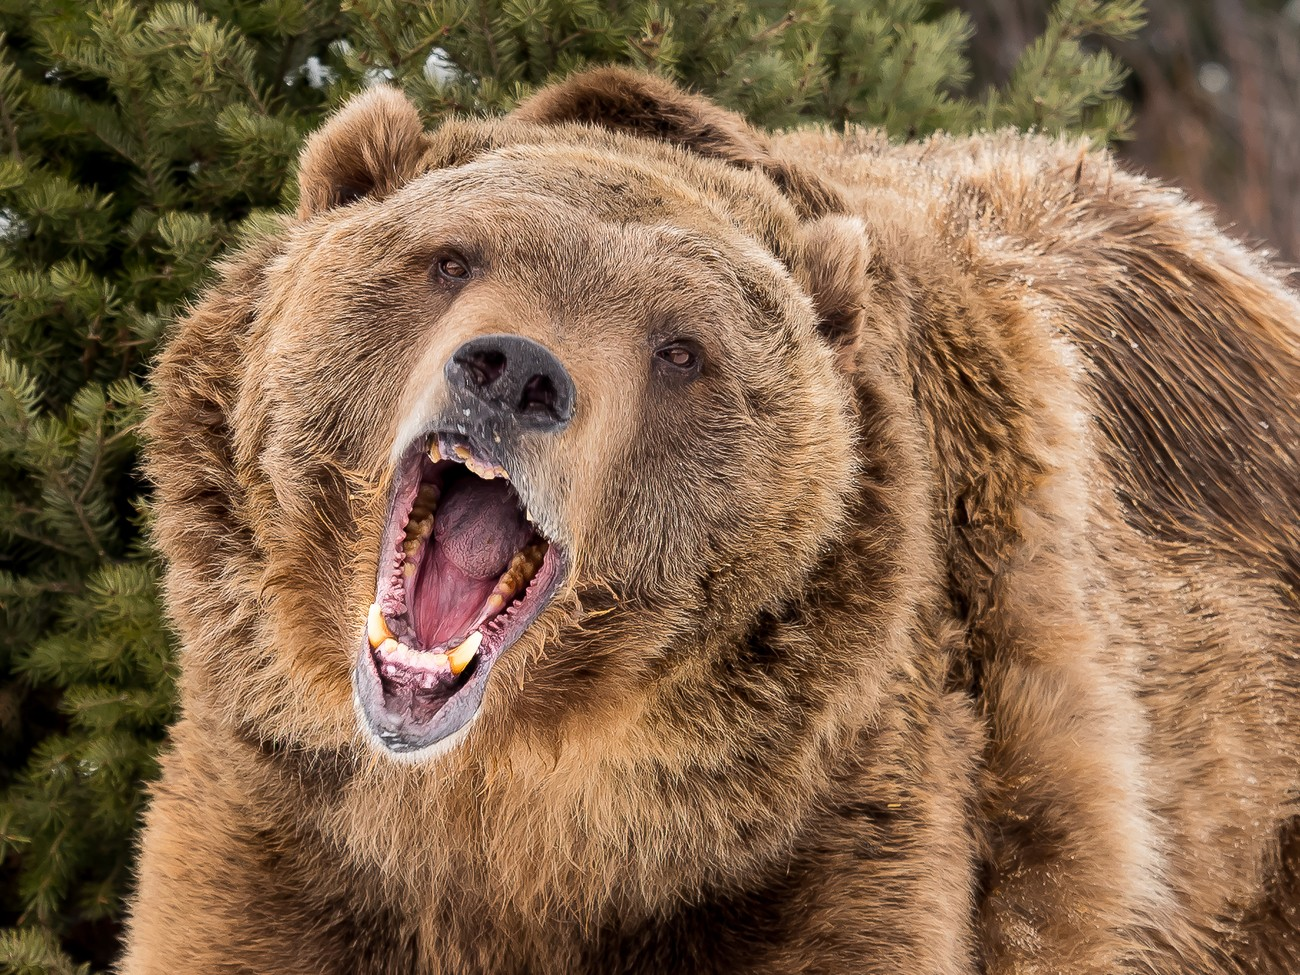 If You Like Bears, You Will Love These Photos